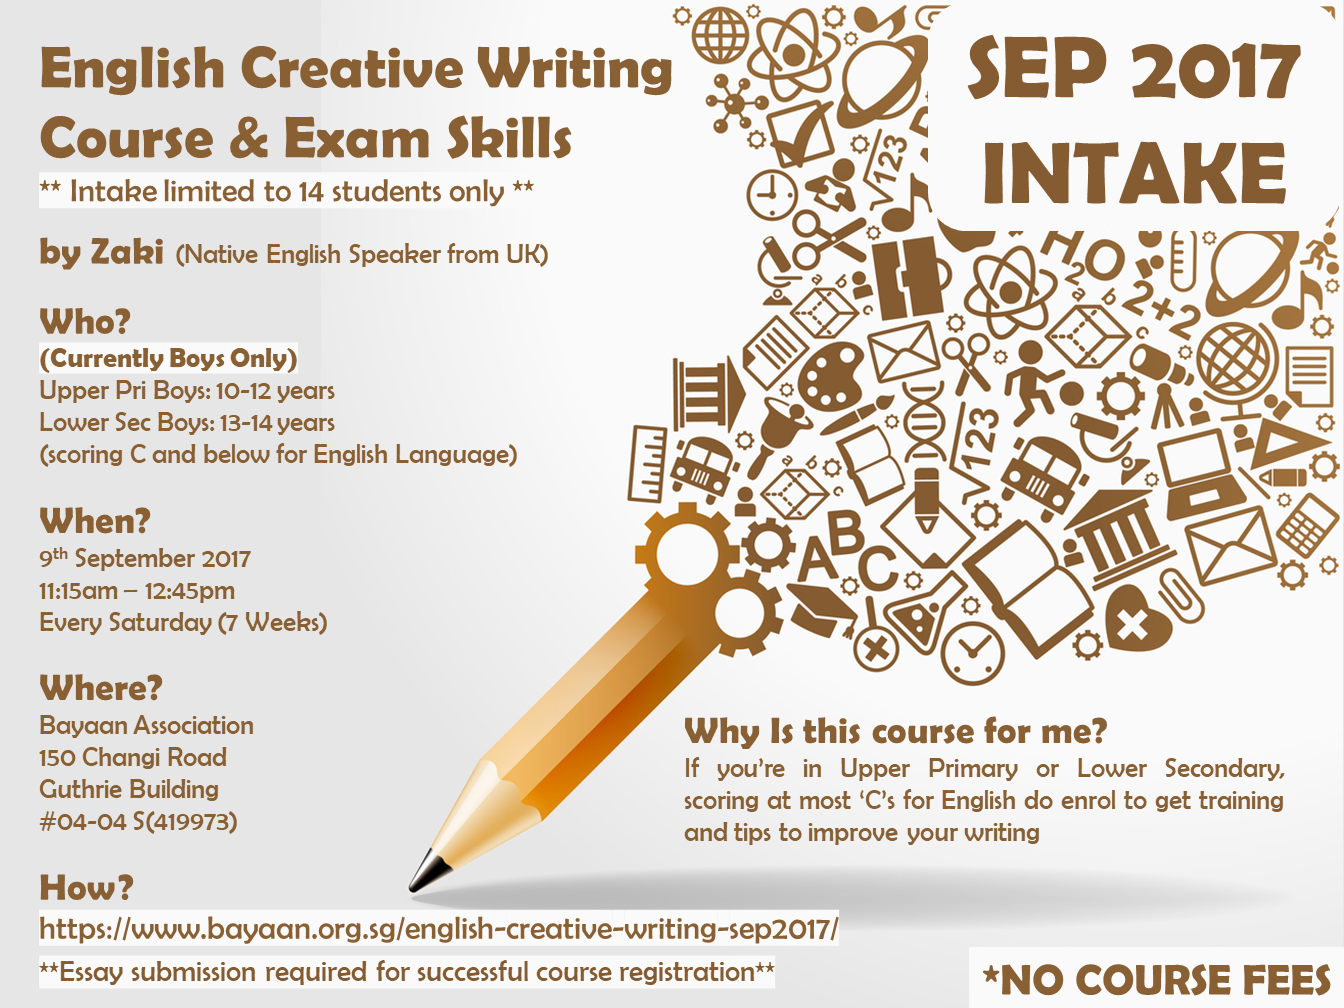 english creative writing  exam skills course for boys  september   scoring at most cs for english language do enrol them to get training  and tips to improve their writing details in the poster below